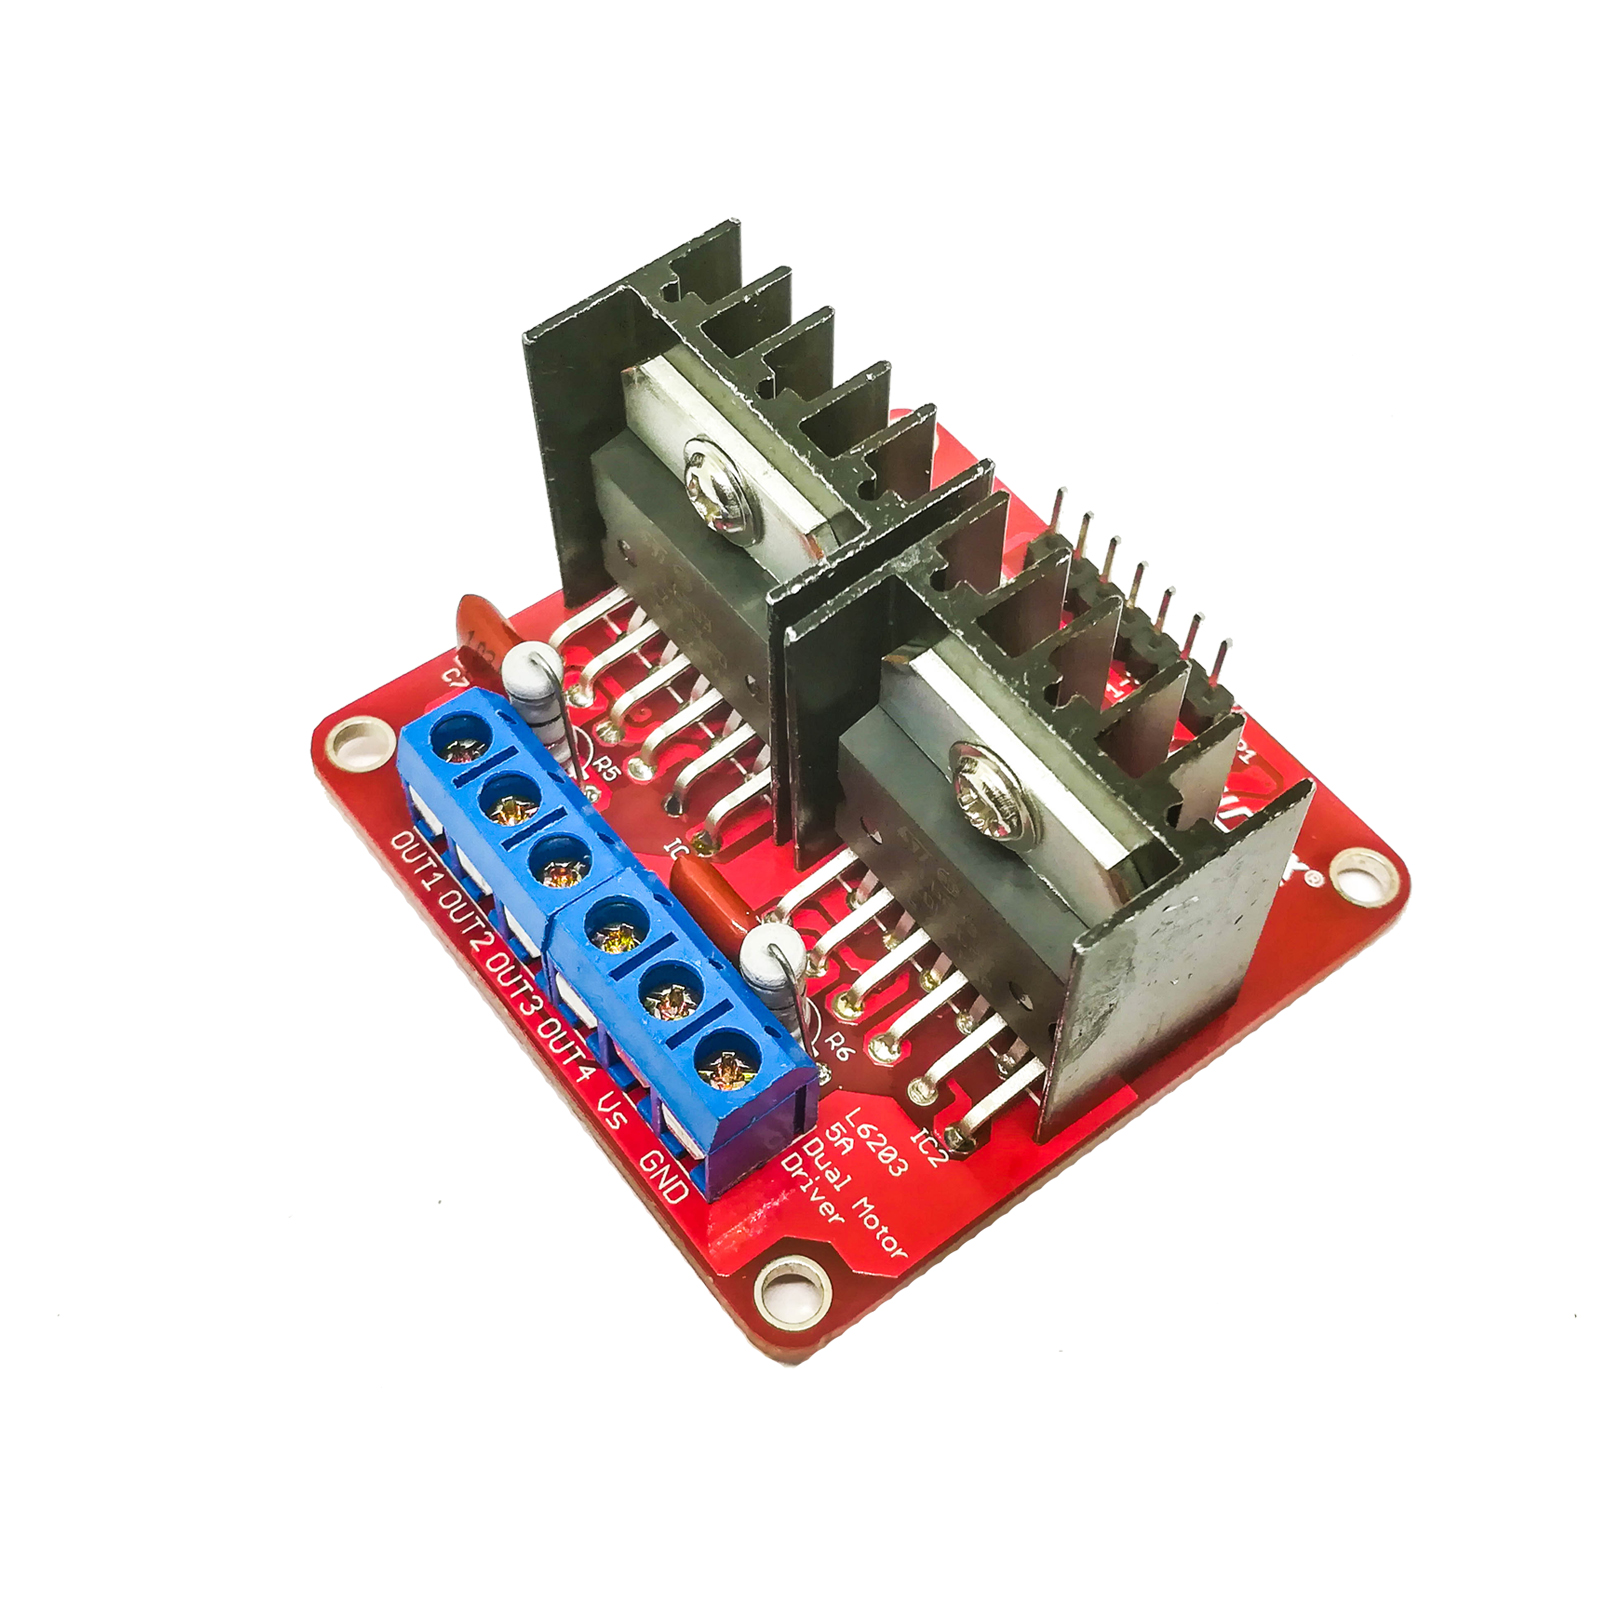 Dagaya 20 Vnh5019 Based Dual Motor Driver Aptinex Circuit Diagram Of Microcontroller And Related Products